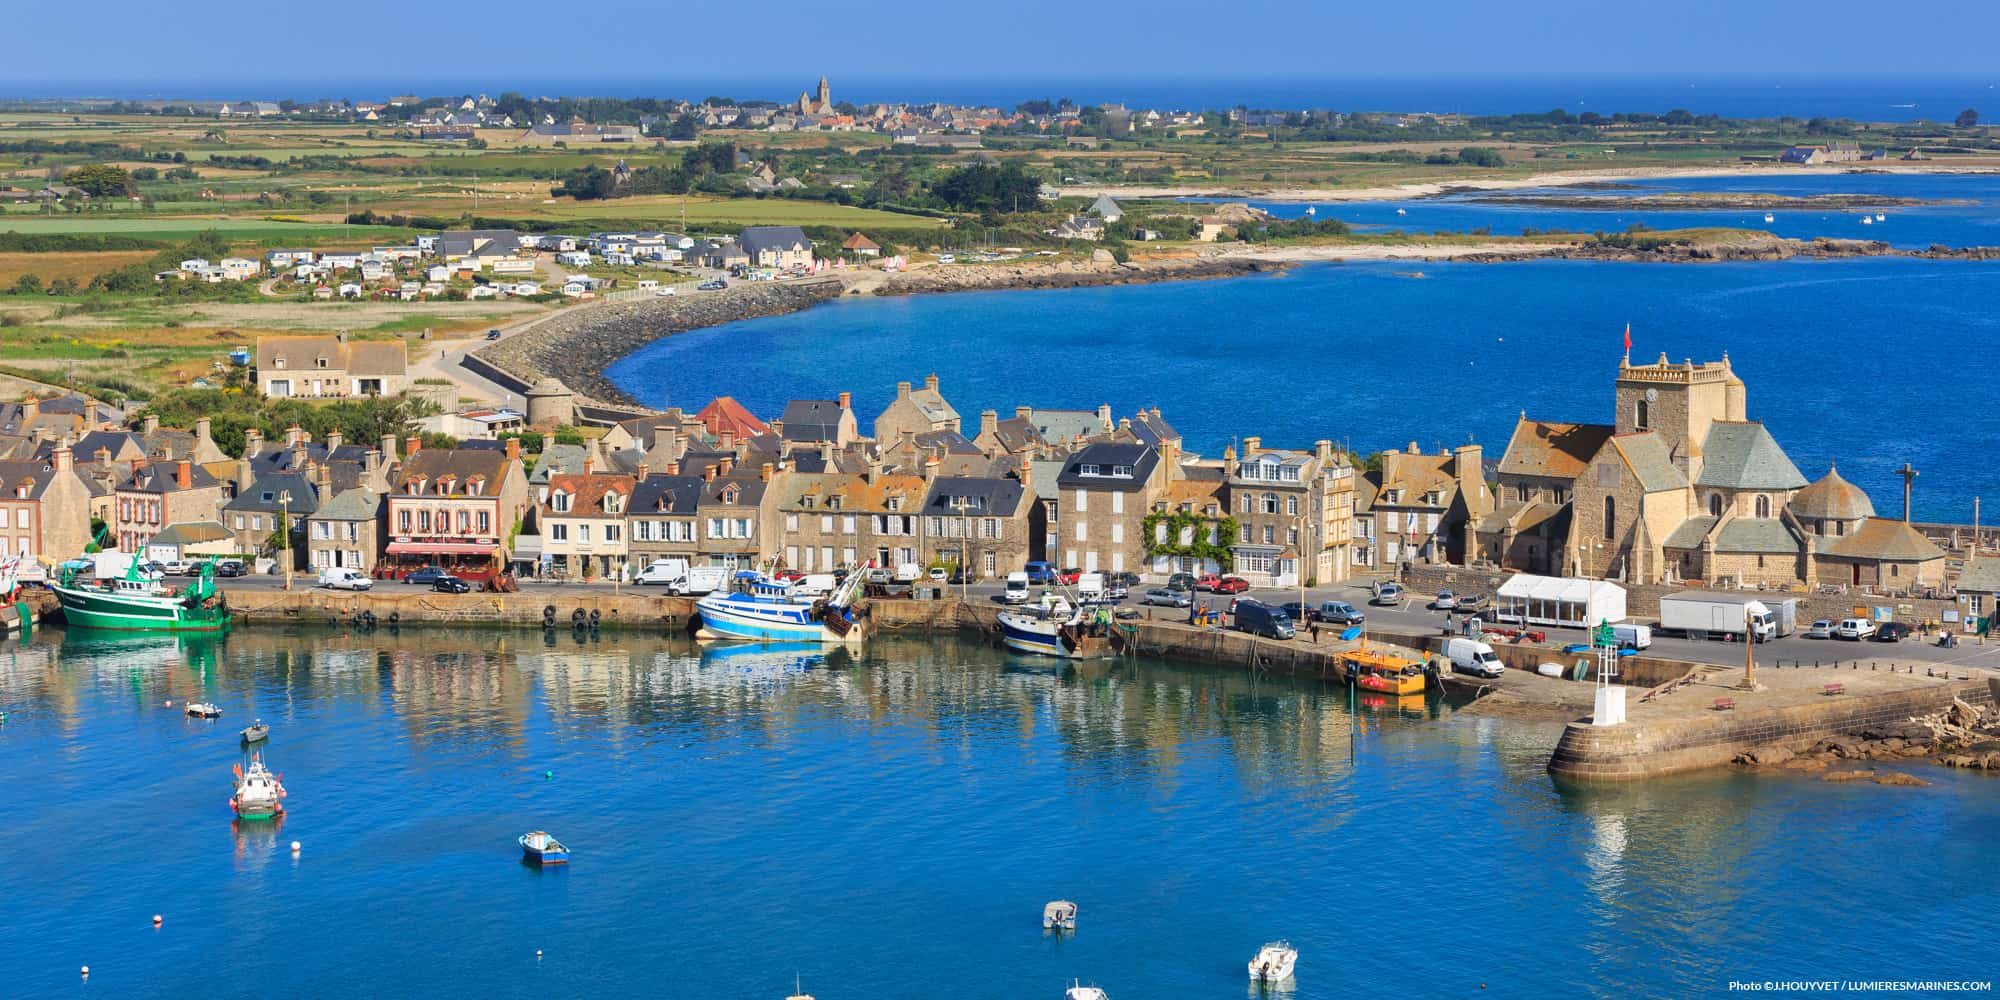 barfleur - Photo